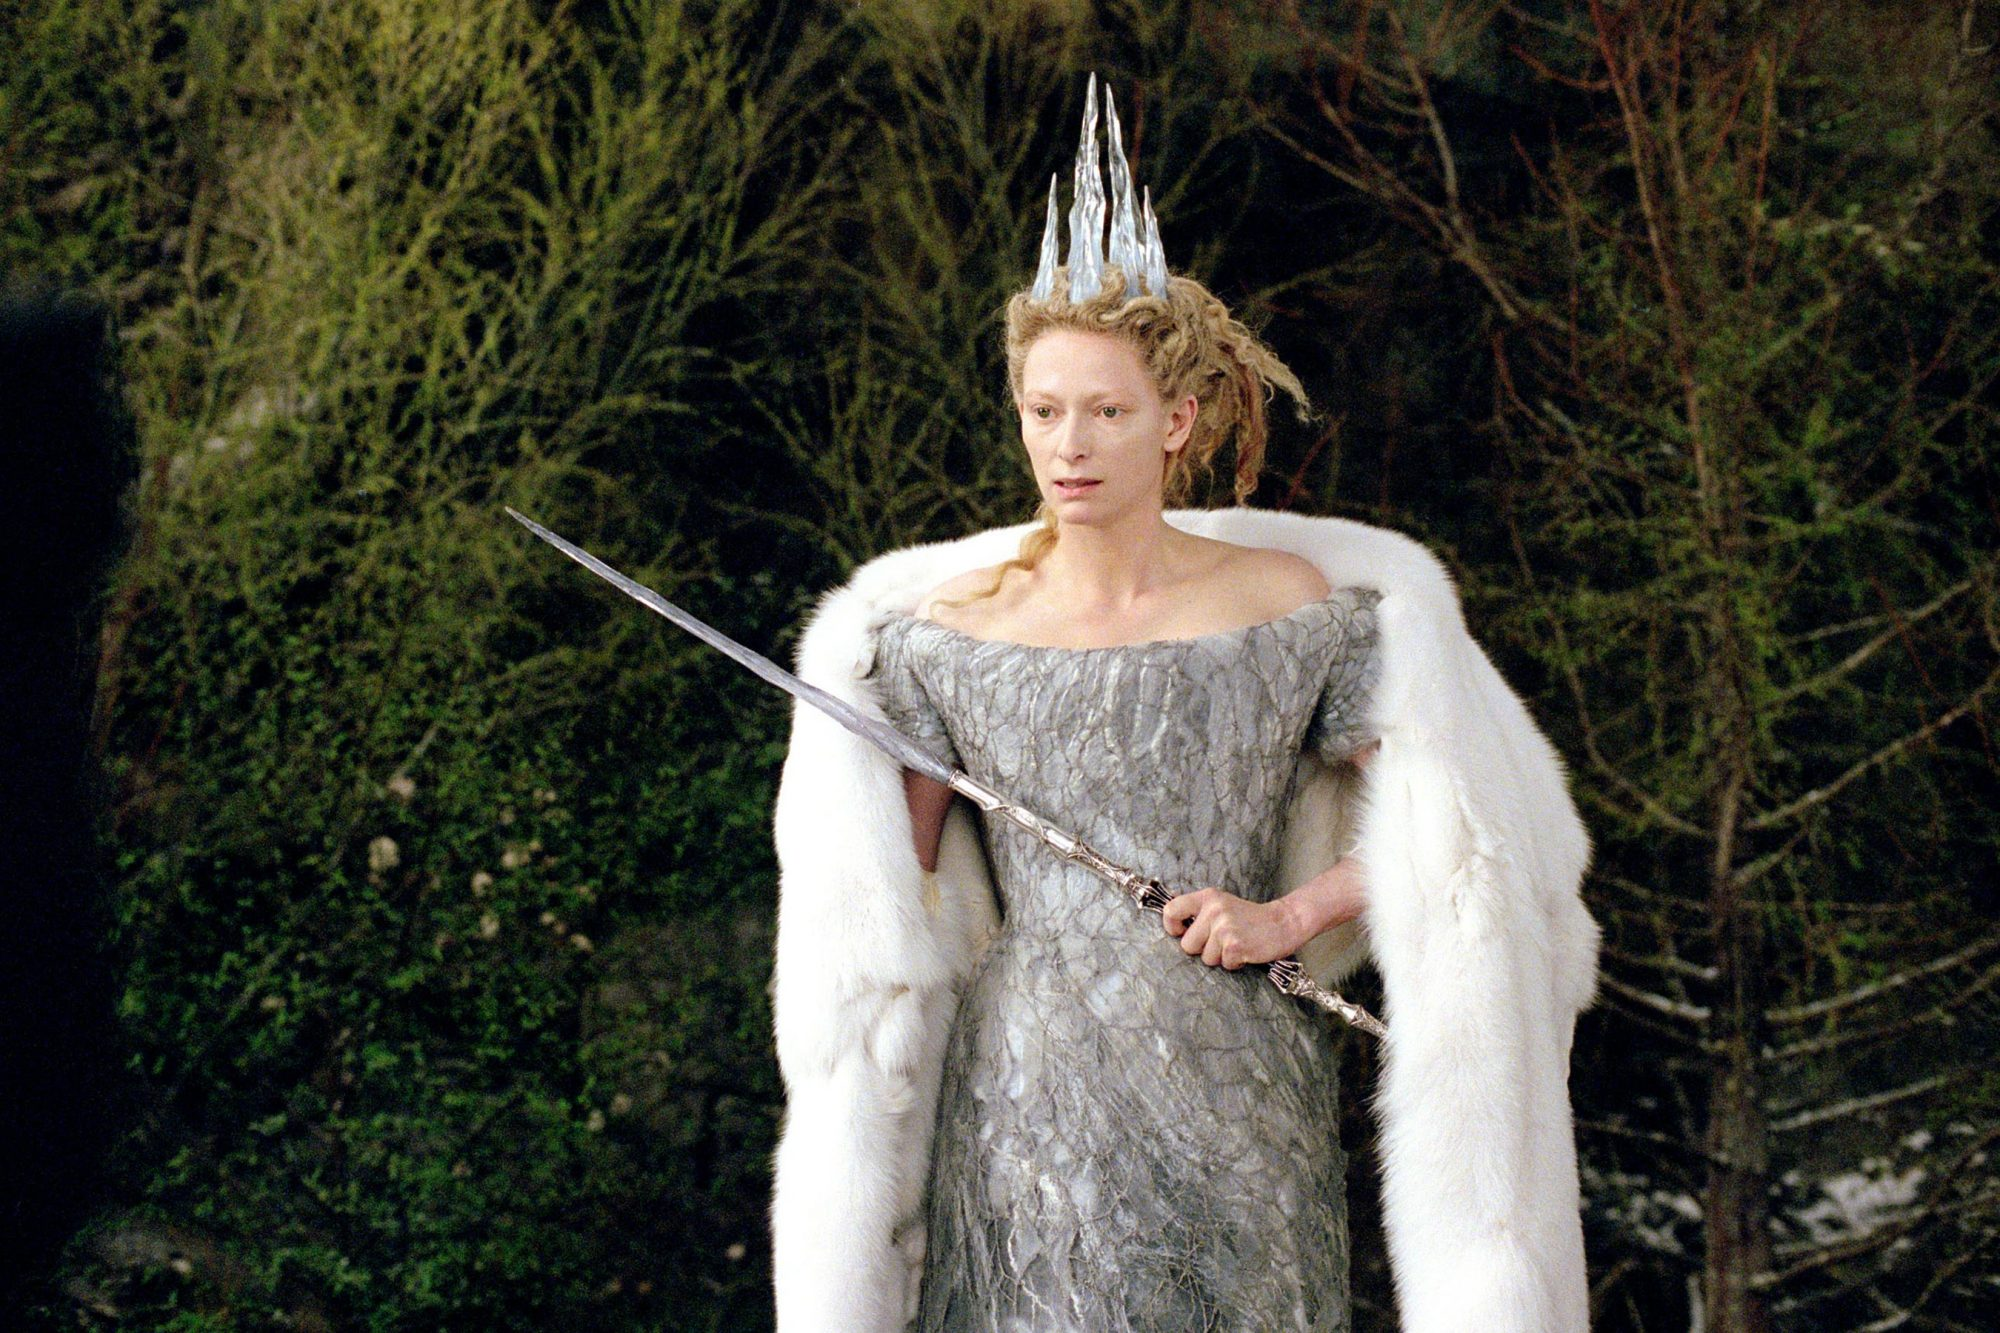 THE CHRONICLES OF NARNIA: THE LION, THE WITCH AND THE WARDROBE, Tilda Swinton, 2005, (c) Walt Disney